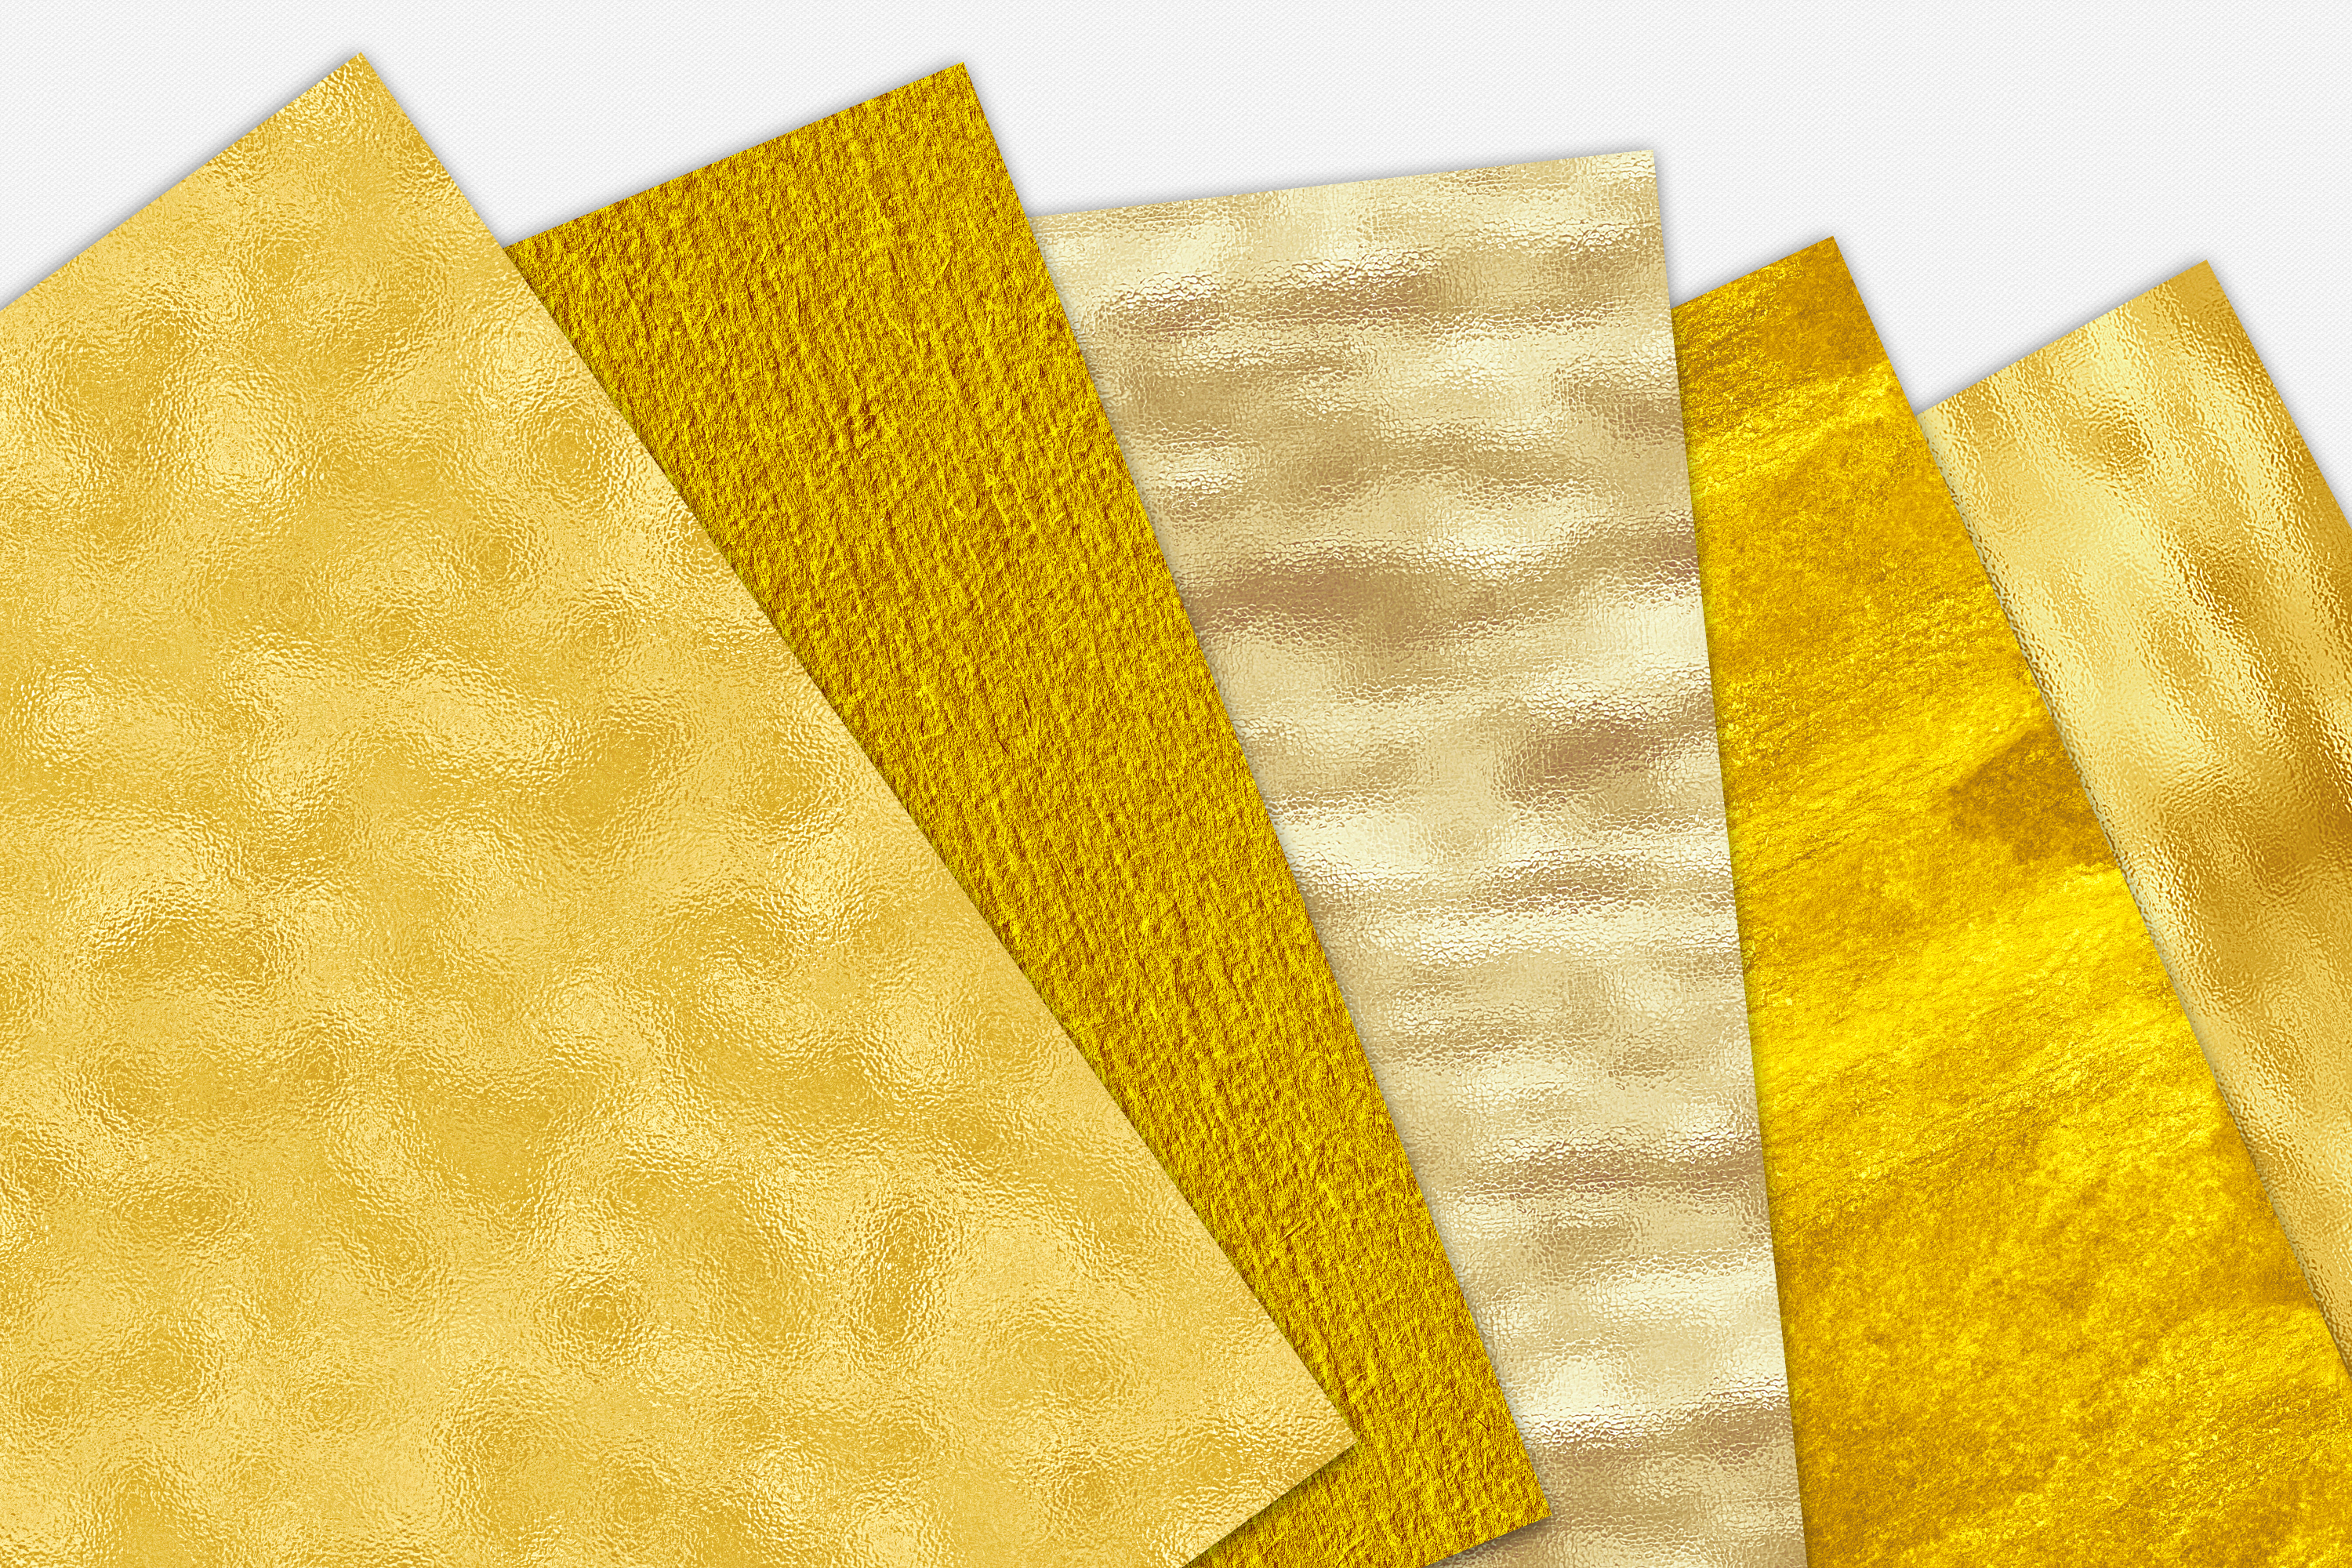 Gold Foil and Glitter Textures - Metallic Digital Papers example image 7